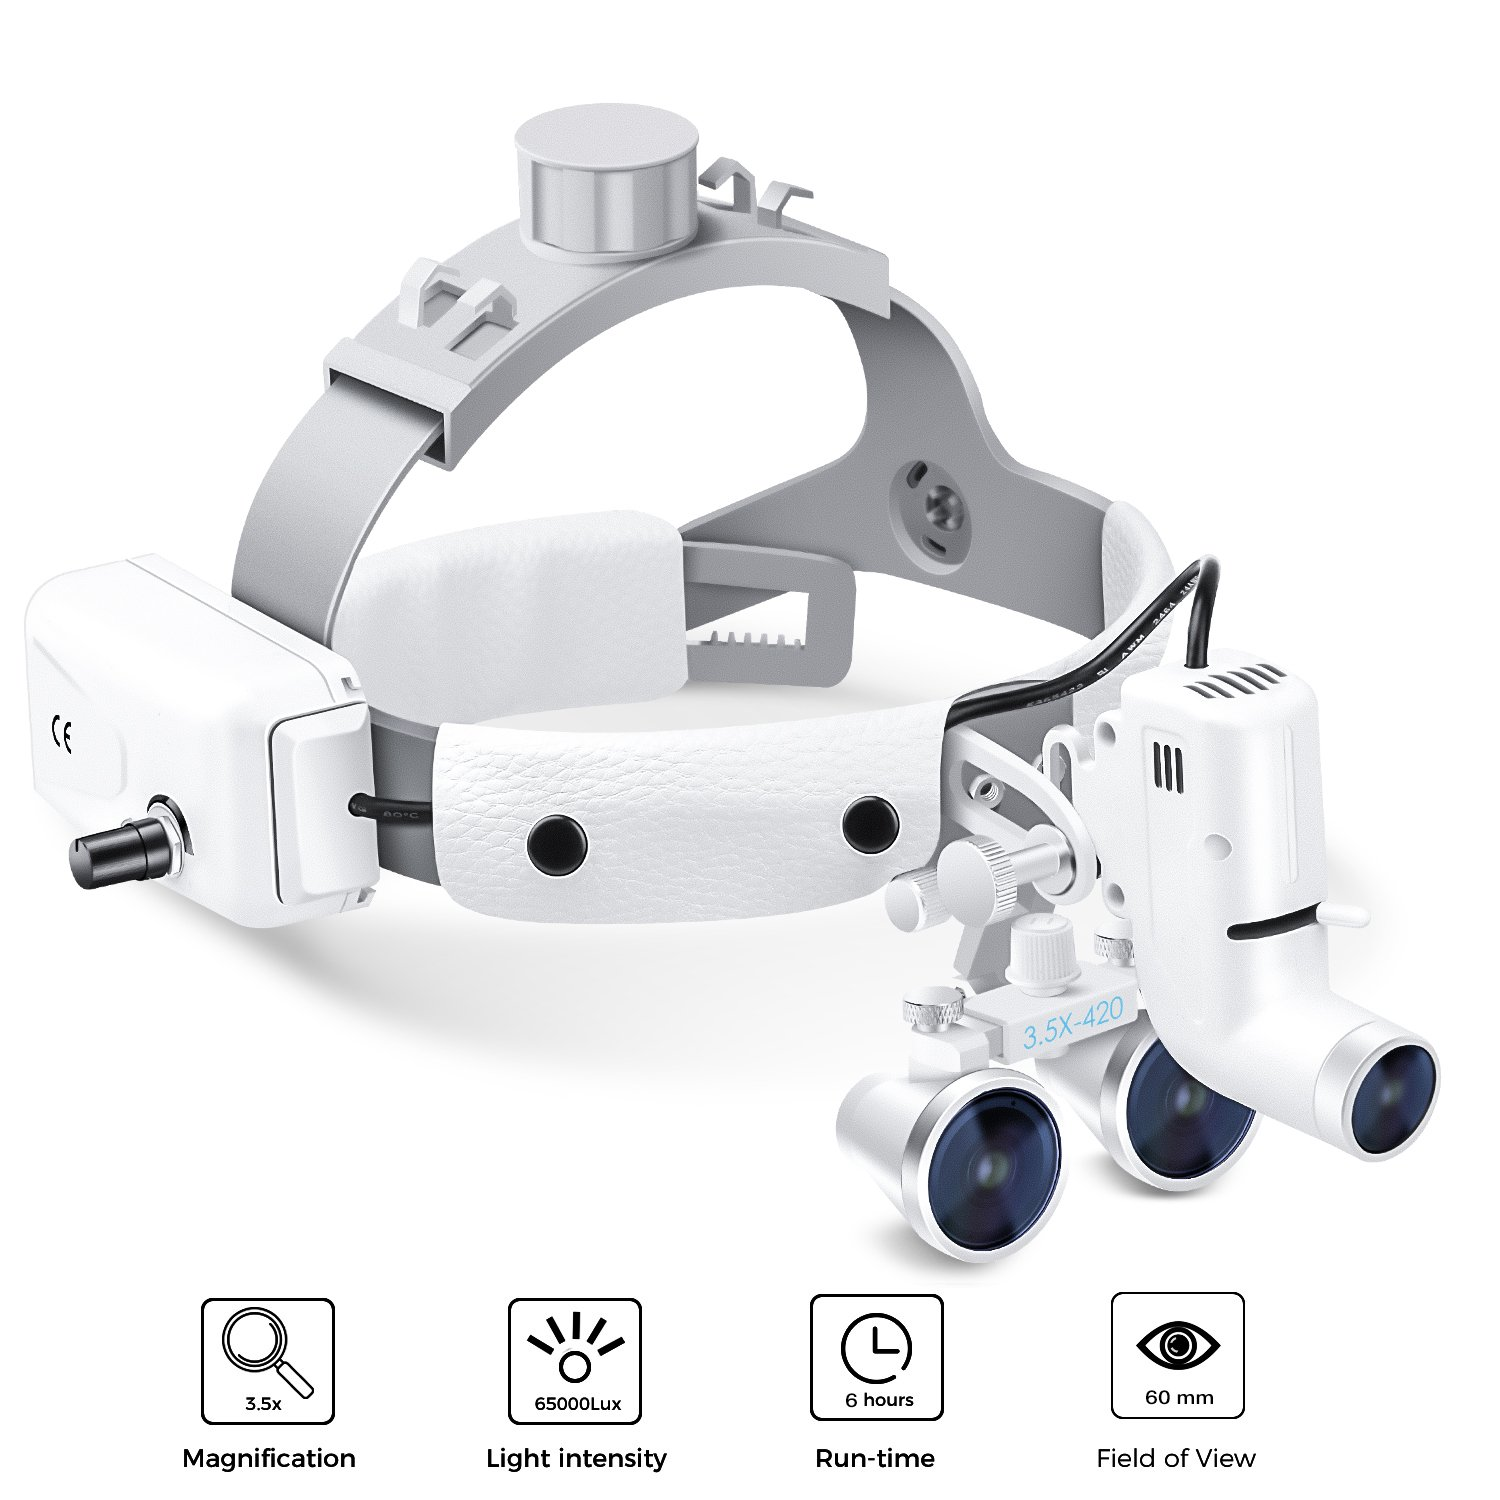 Dental Surgical Binocular Headband Loupes with Headlights, Medical Magnifier with 5W LED Headlamp Lights for Surgery Vascular, Working Distance: R(420 mm), Magnification: 3.5X by VOUO